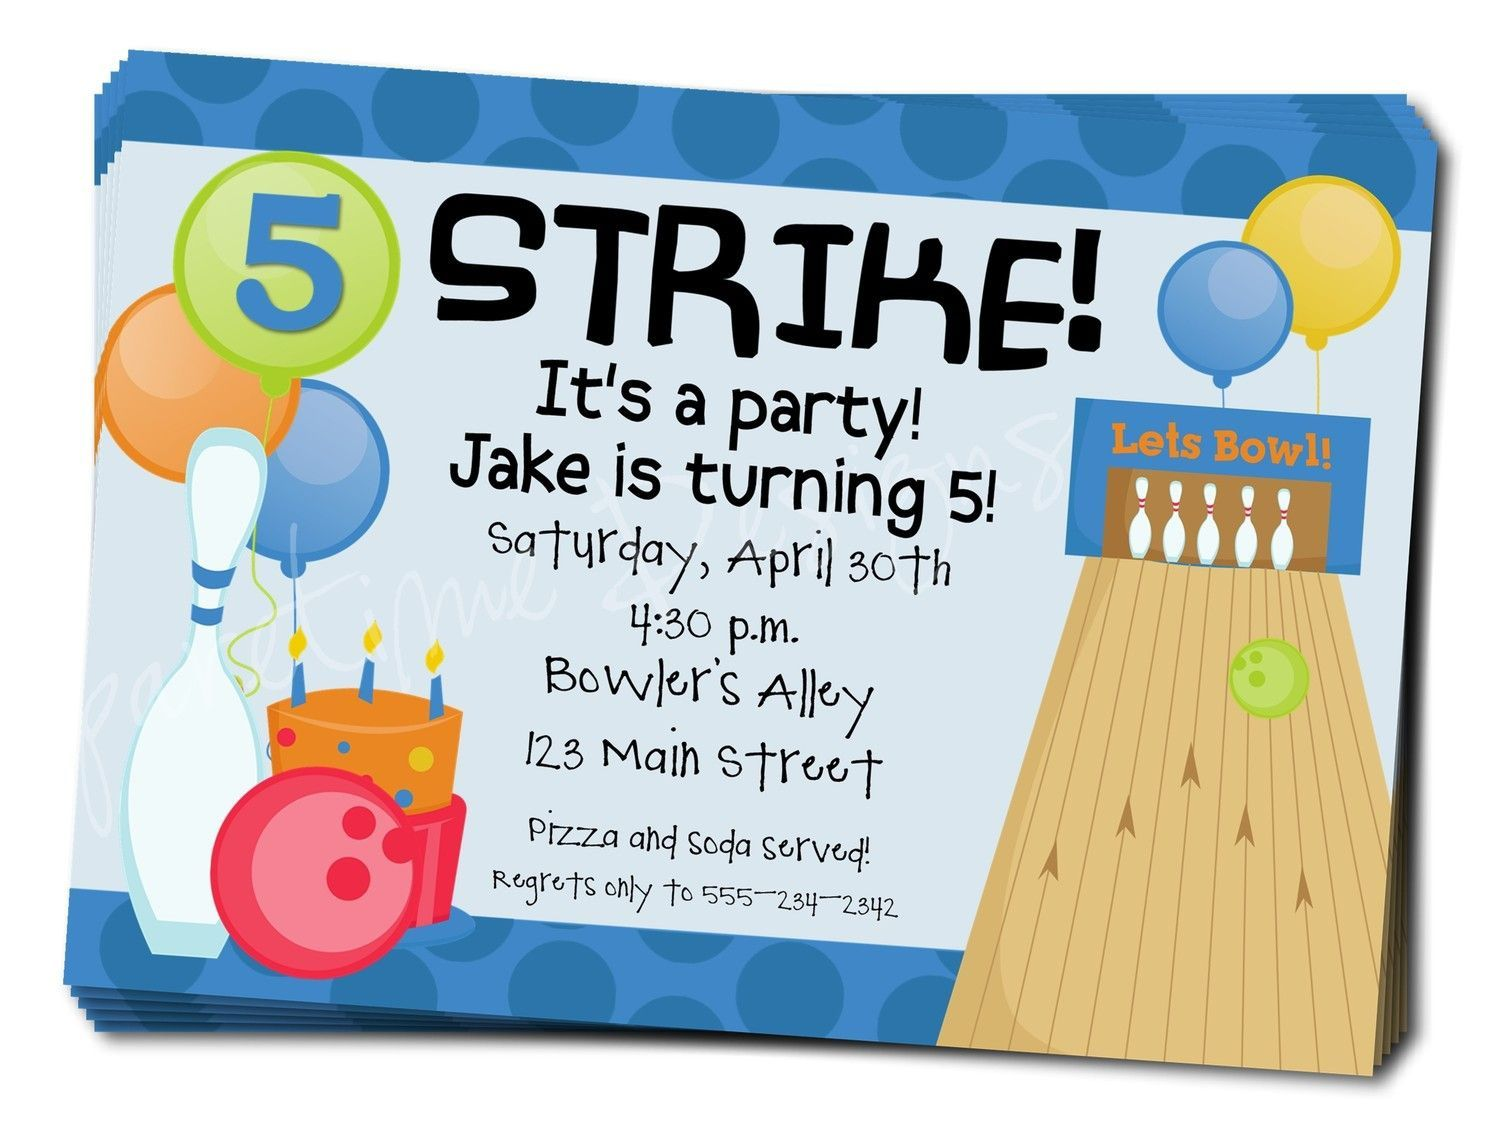 006 Magnificent Bowling Party Invite Printable Free Highest Quality  Birthday Invitation GirlFull